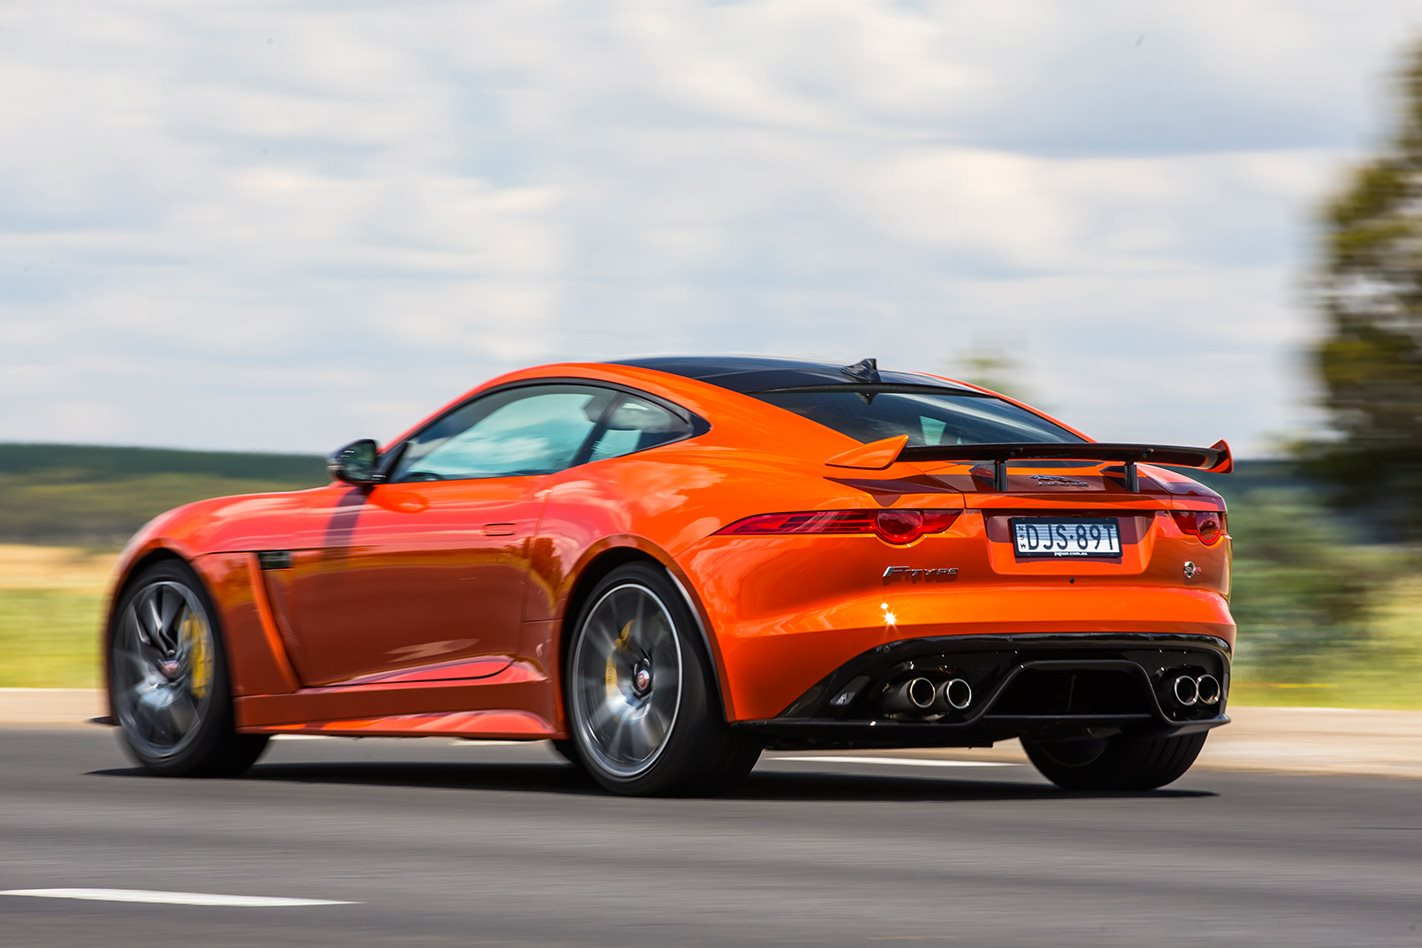 2017 Jaguar F-Type SVR rear